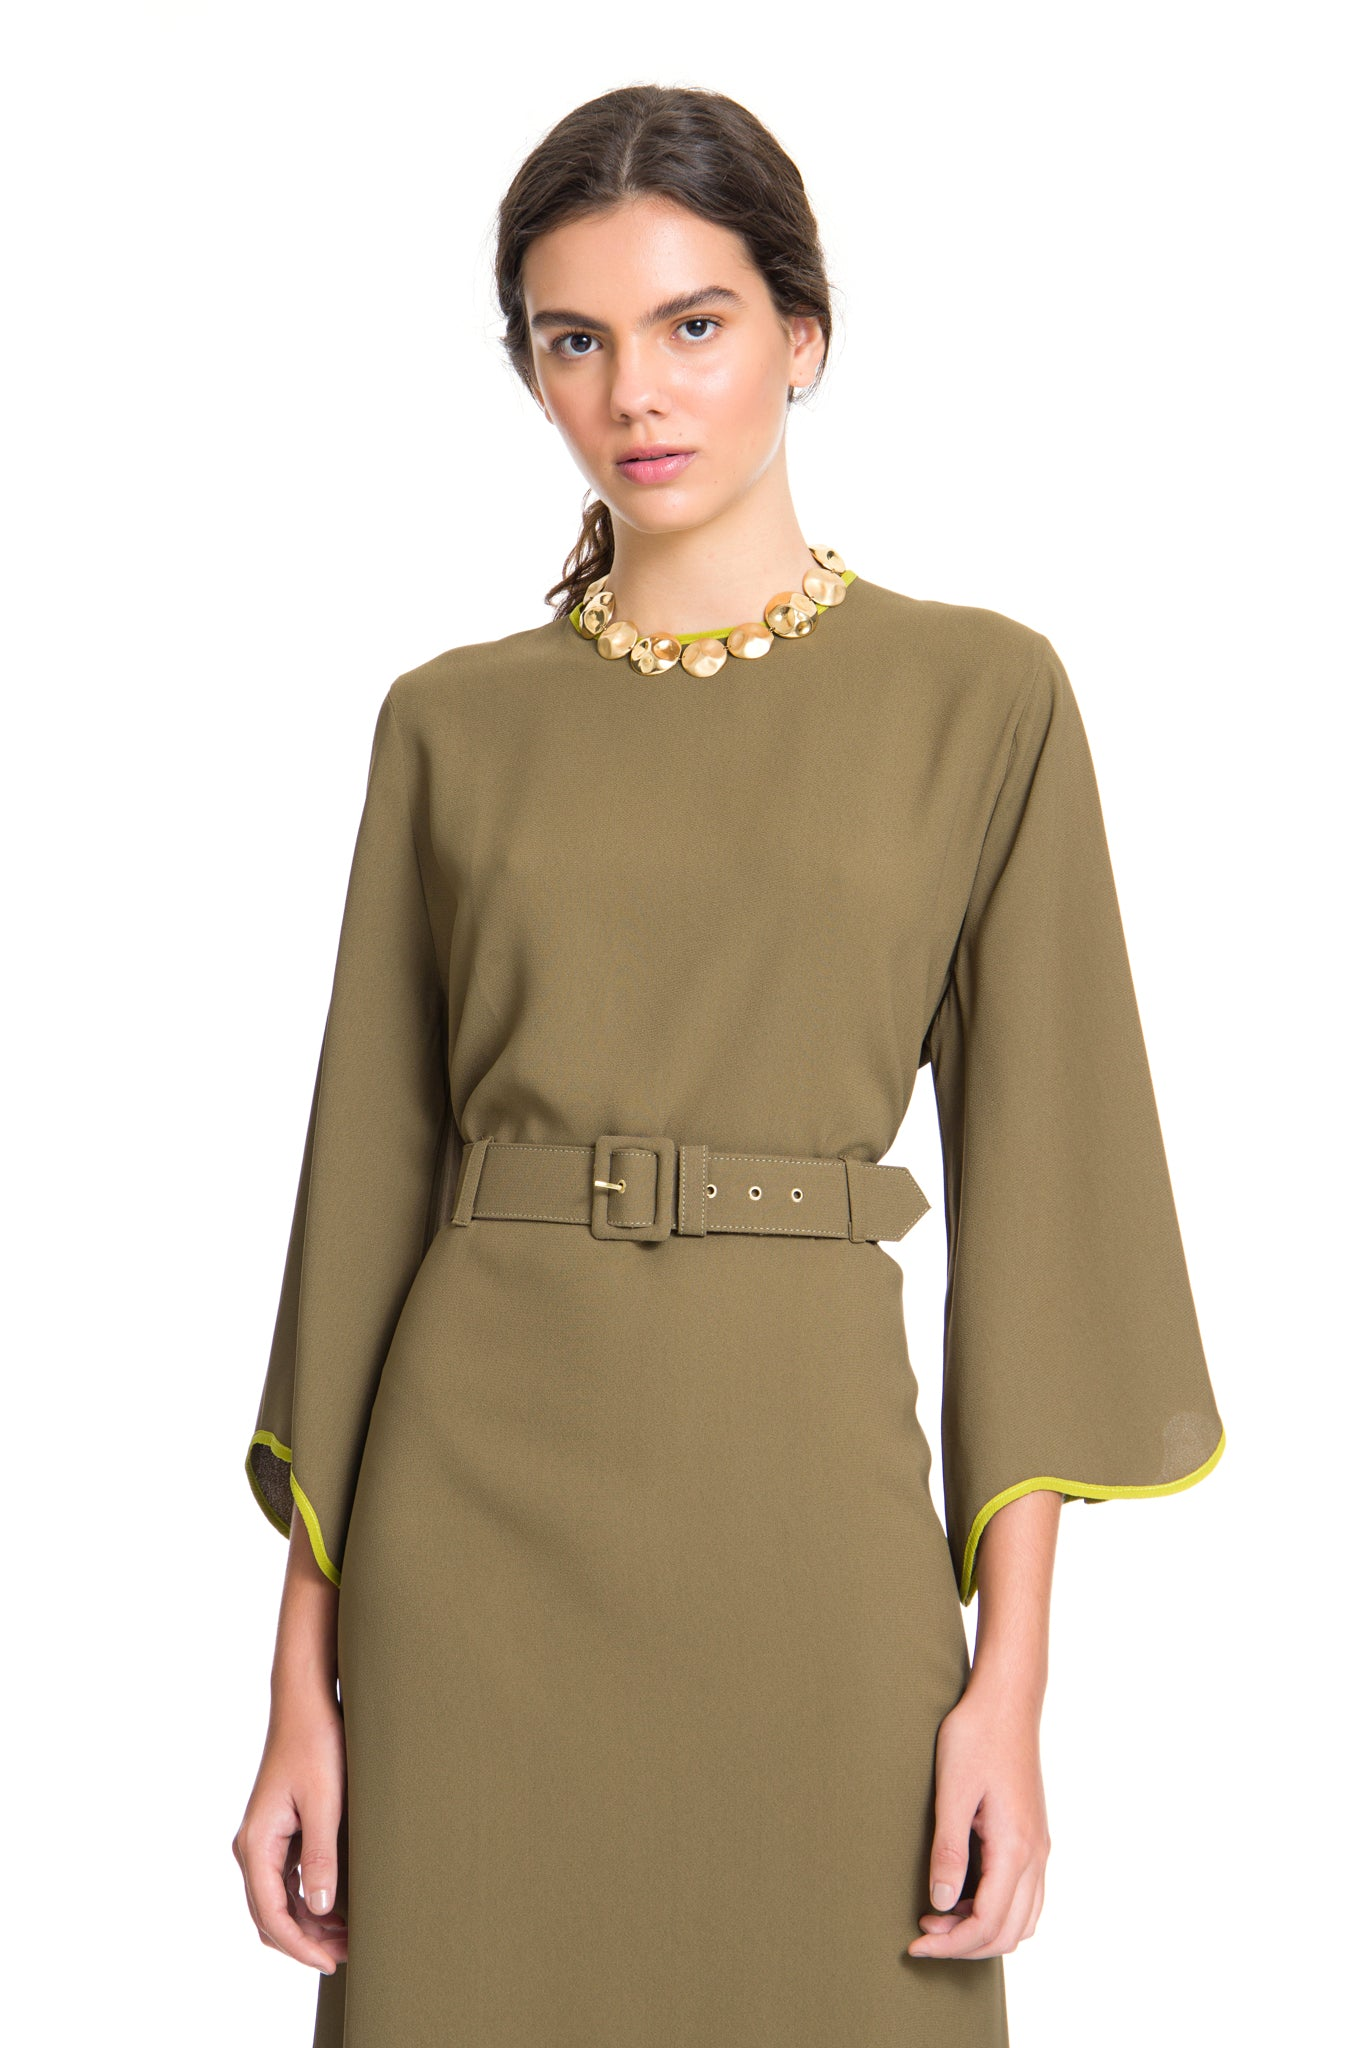 MILITARY/AVOCADO LUCY DRESS